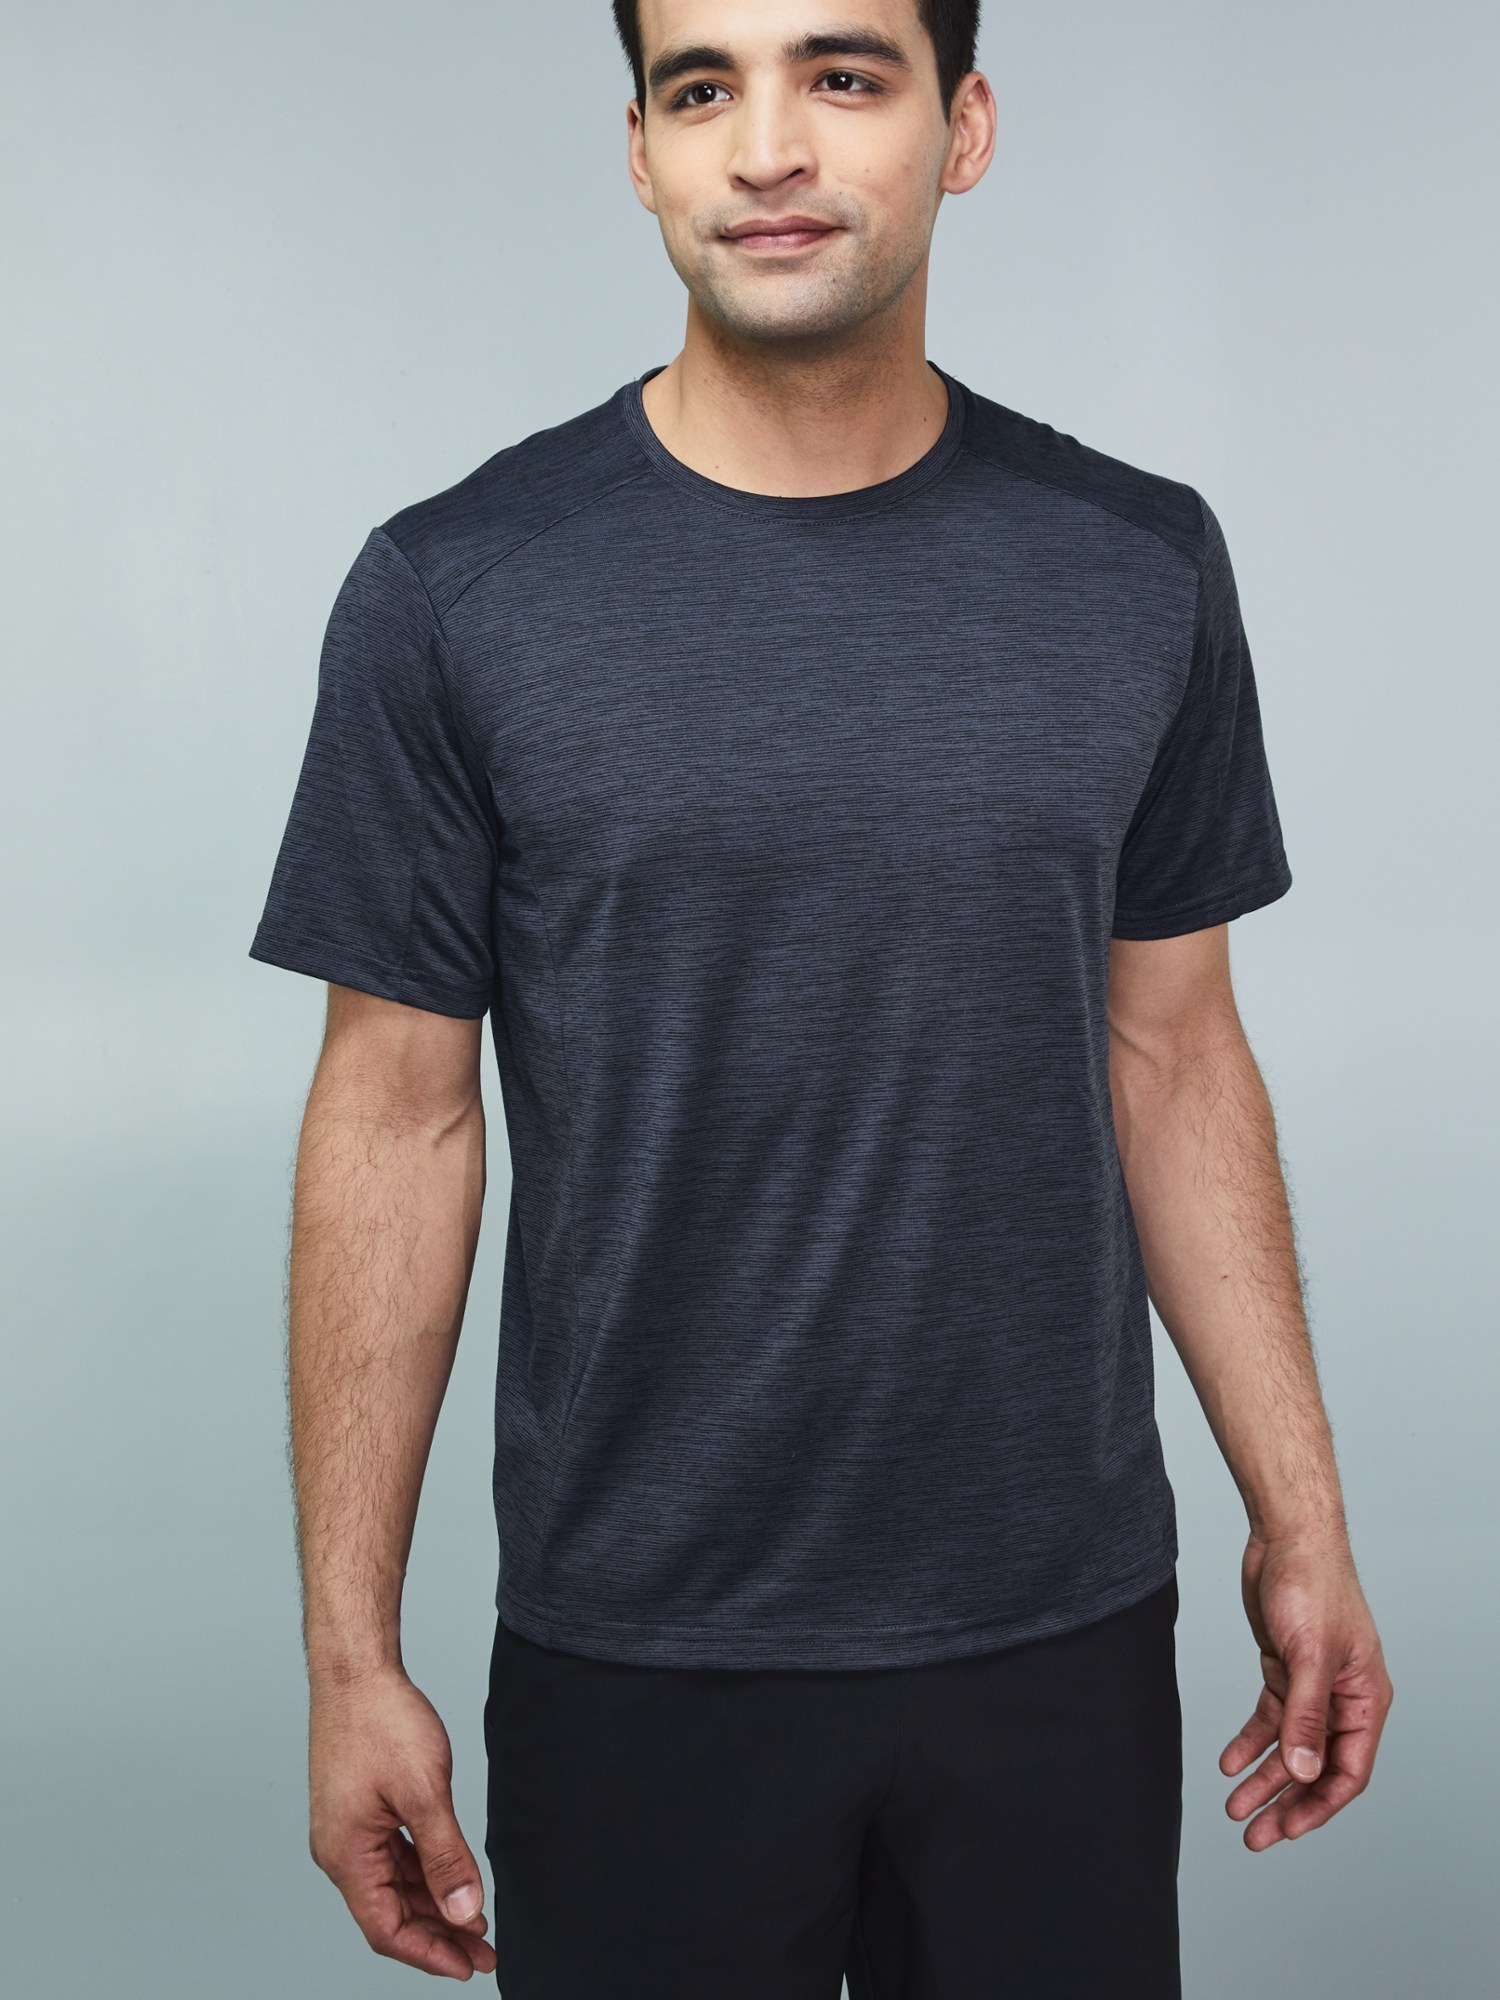 REI Co-op Active Pursuits T-Shirt - Men's